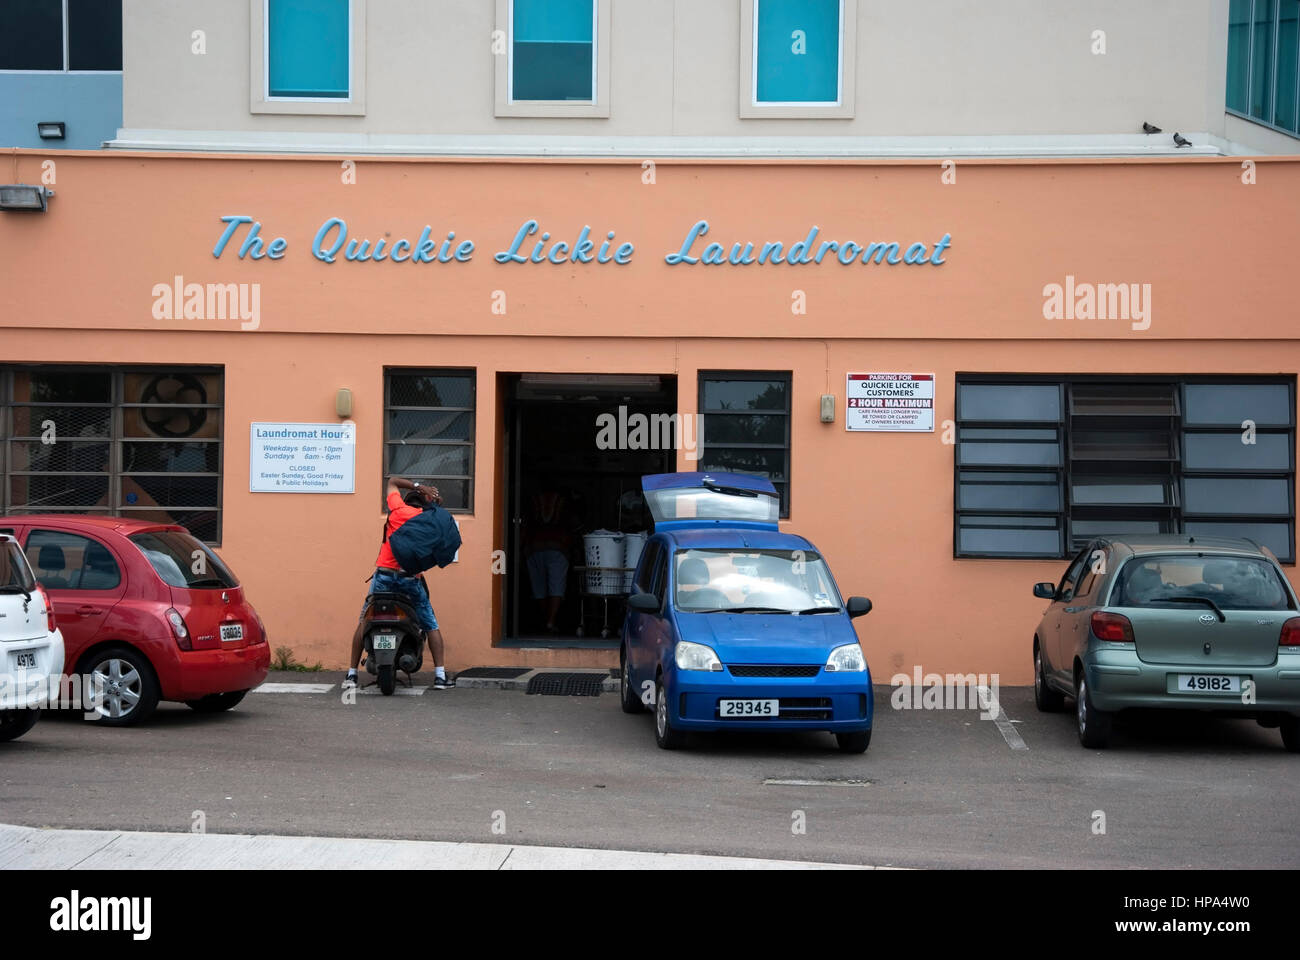 The Quickie Lickie Laundromat 74 Serpentine Road Hamilton Bermuda exterior view of peach colour color premises building - Stock Image